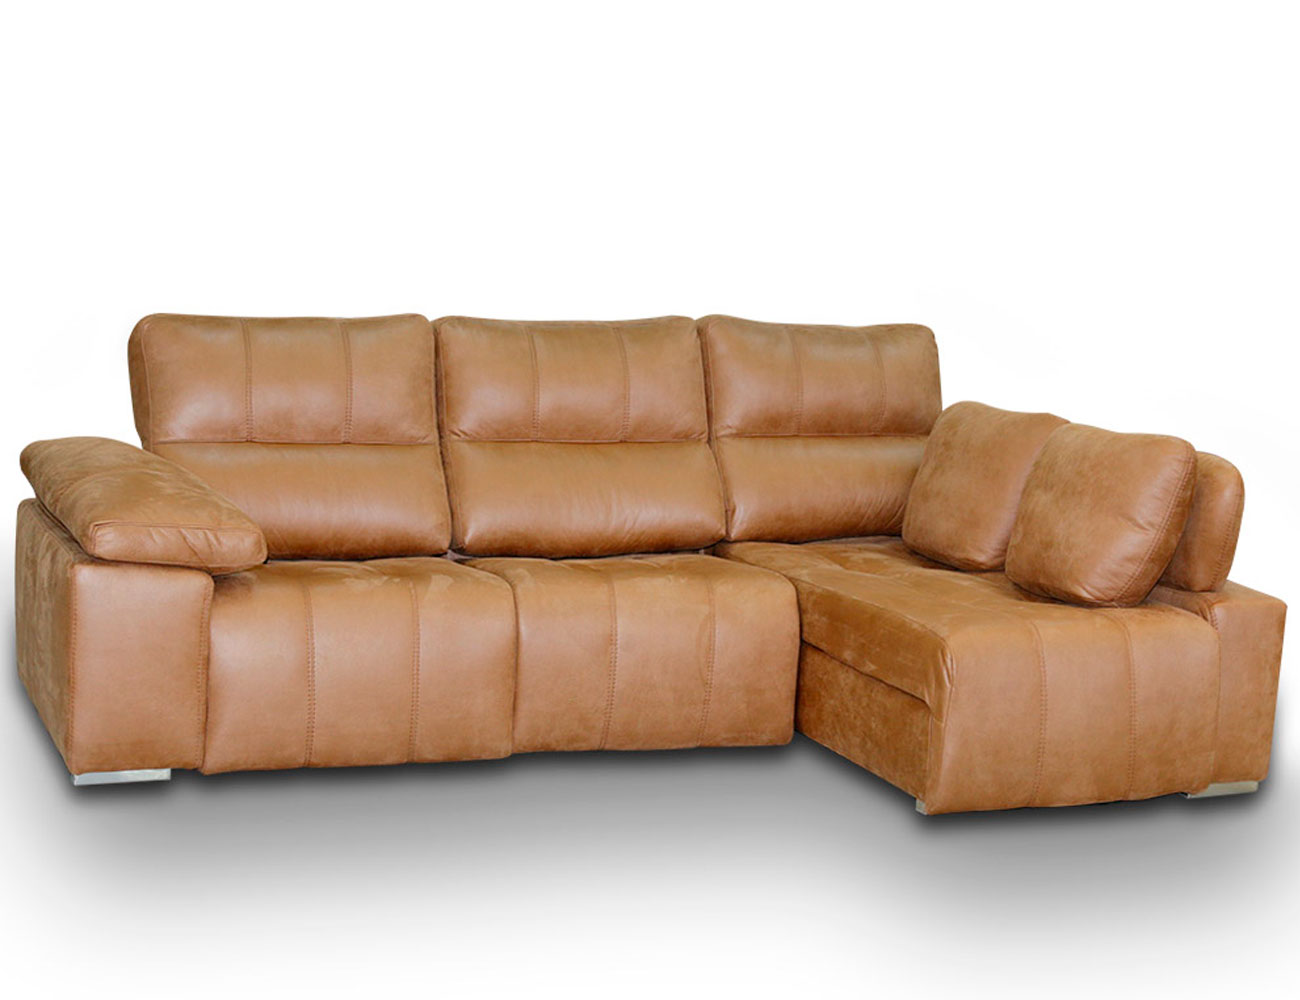 Sofa chaiselongue relax 2 motores anti manchas42